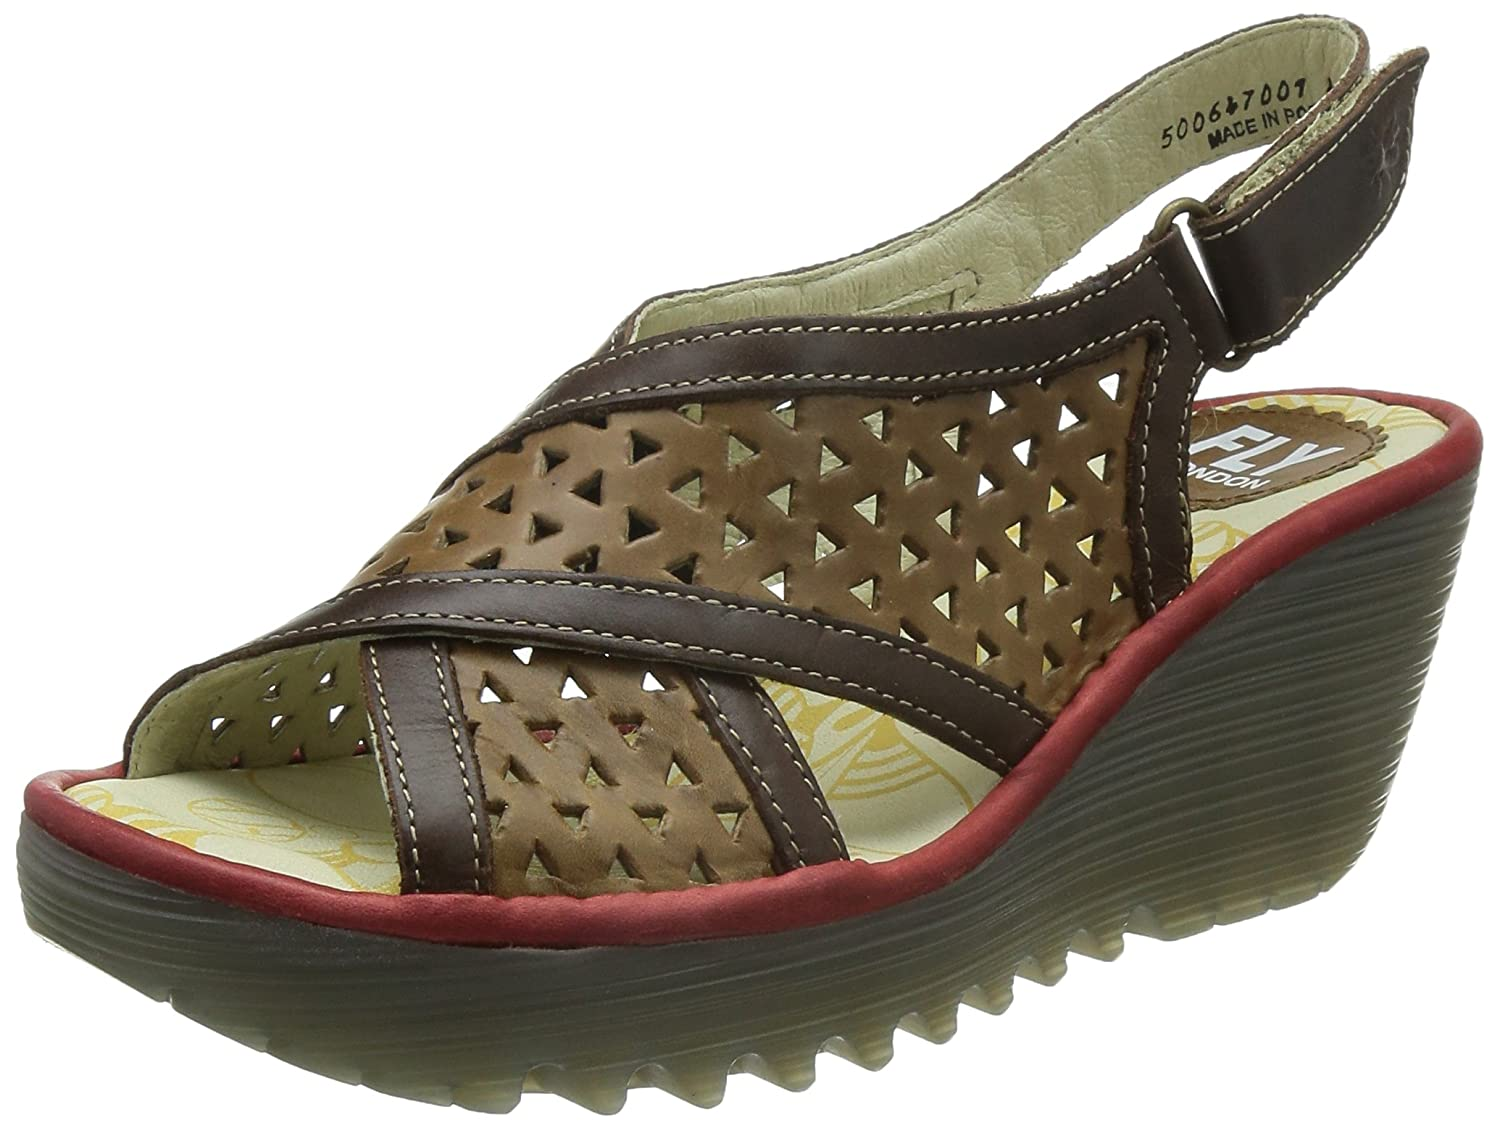 Fly London Femme P500647Sandales Brown Marroncameldk 76gvbIYfy